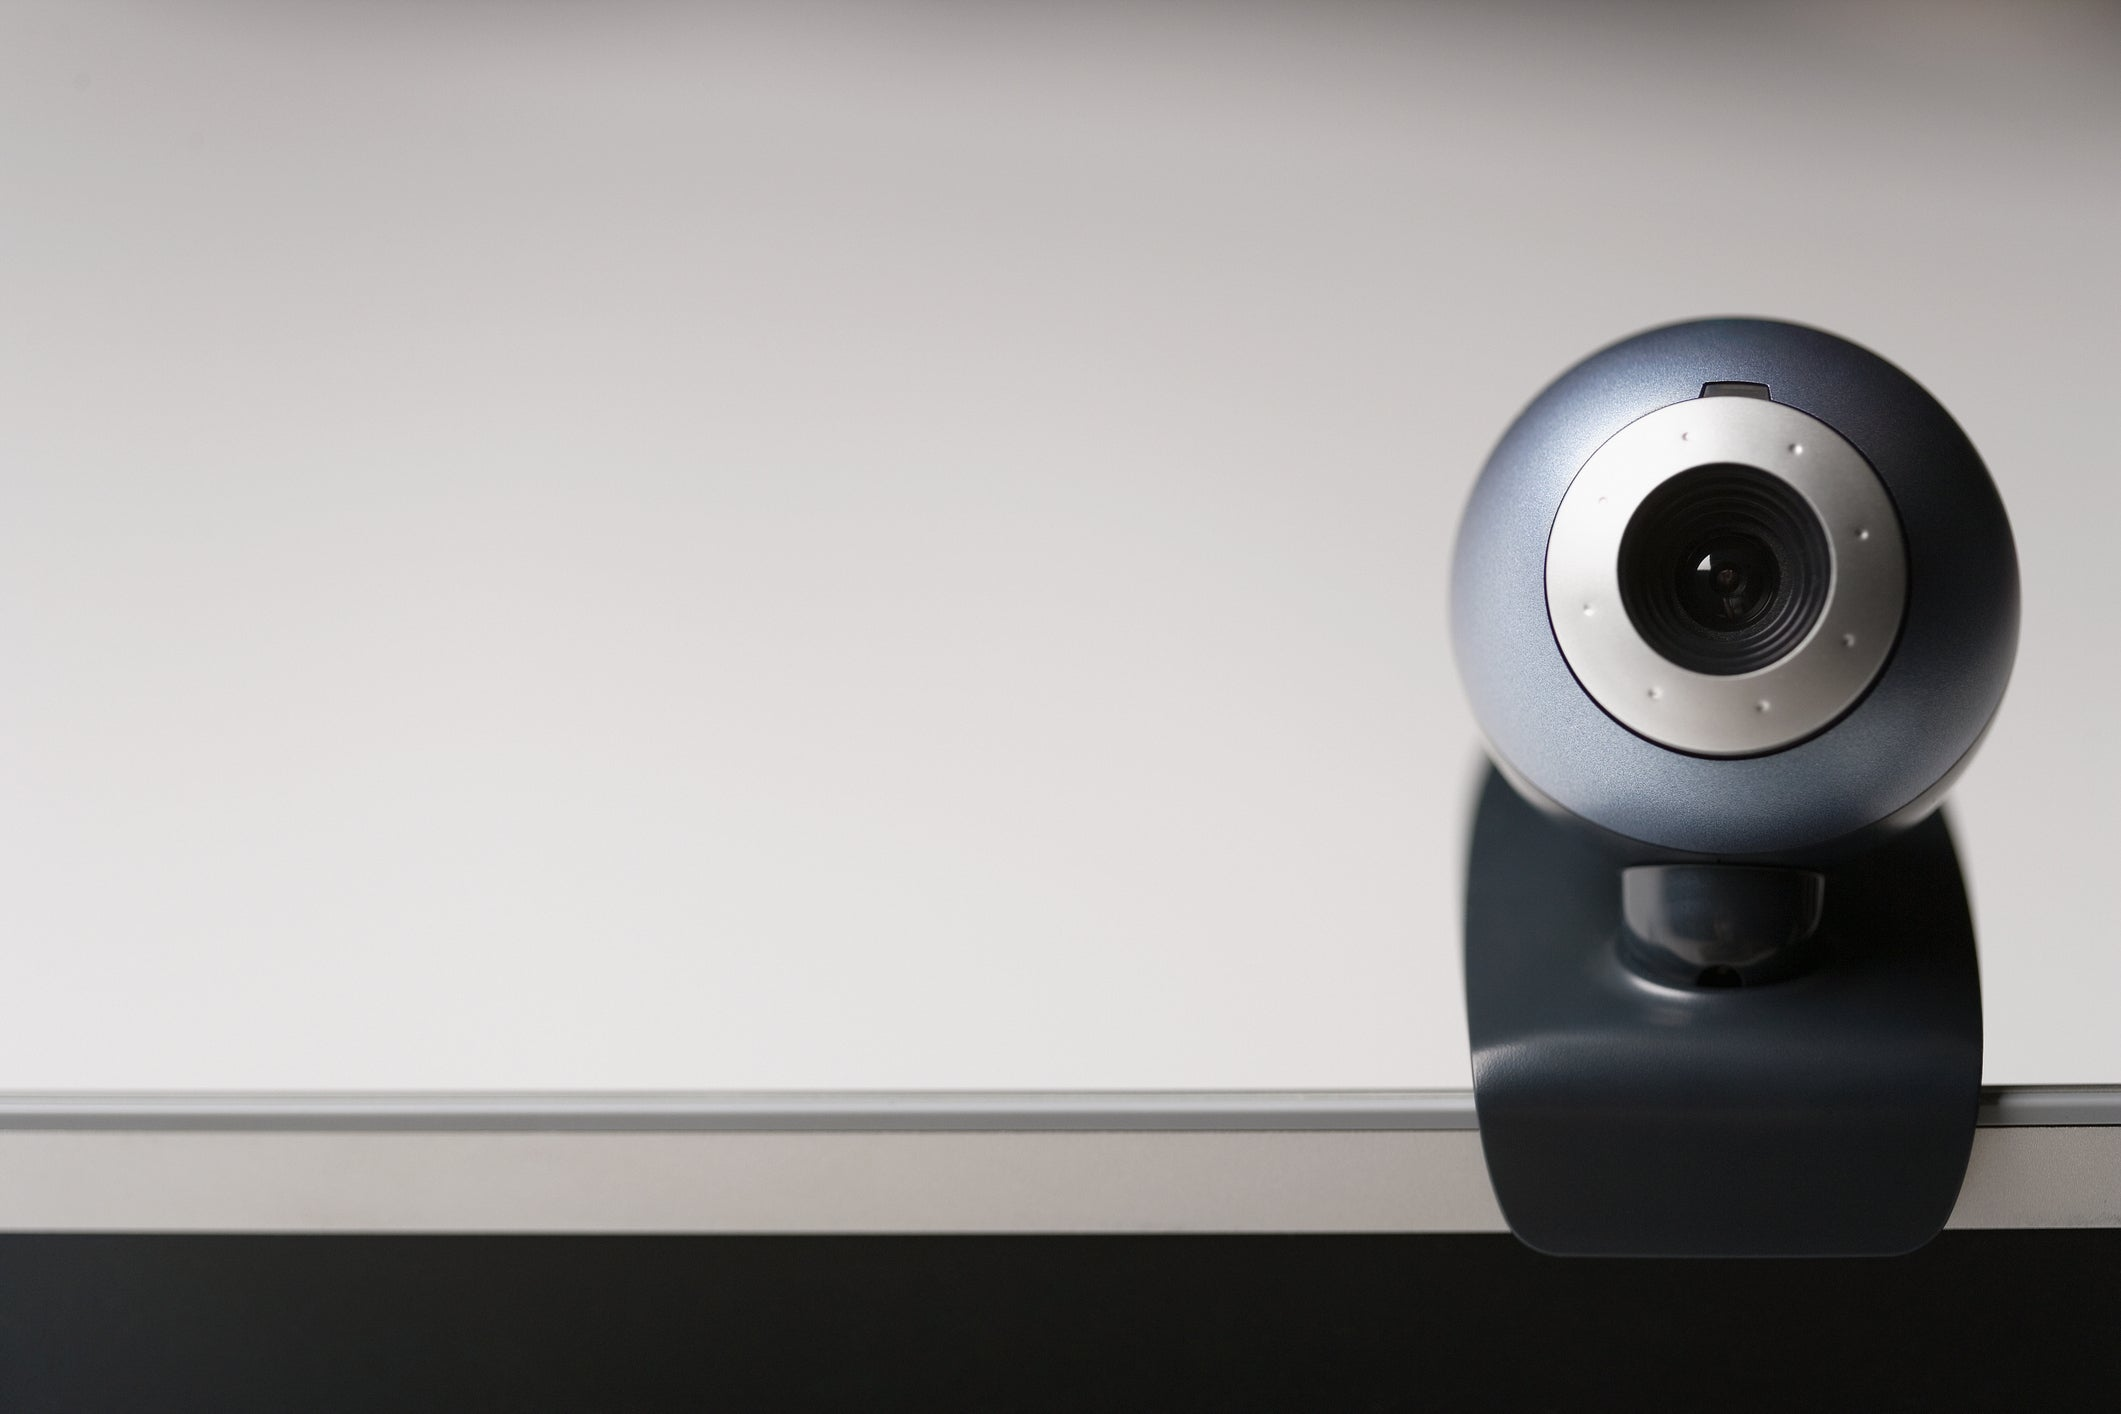 Set up your webcam for access from the road | PCWorld